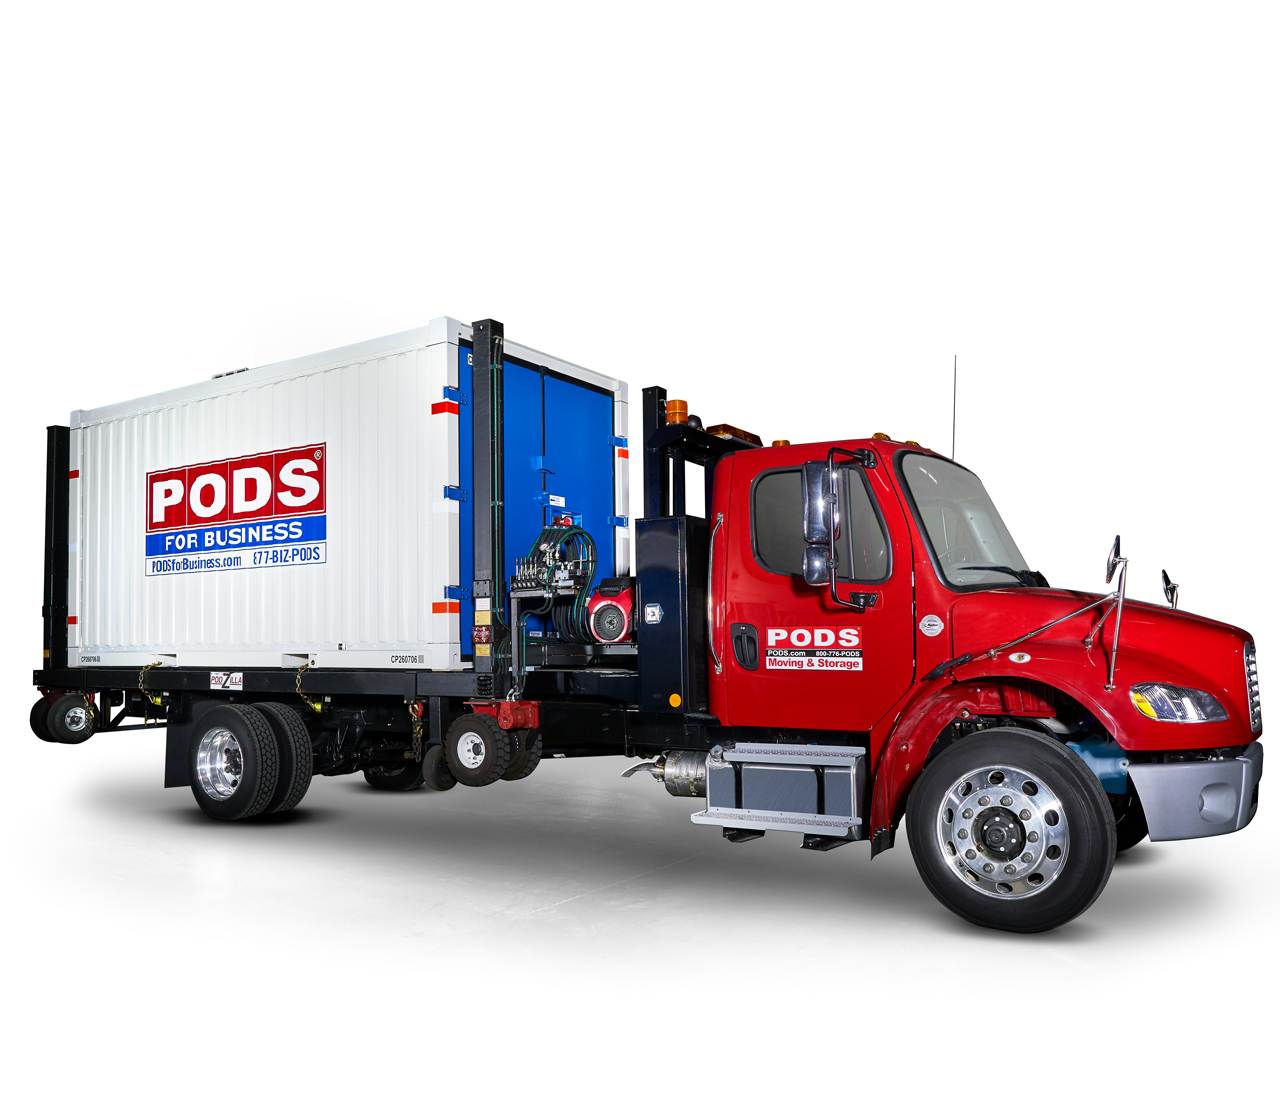 PODS for Business Commercial Container on truck